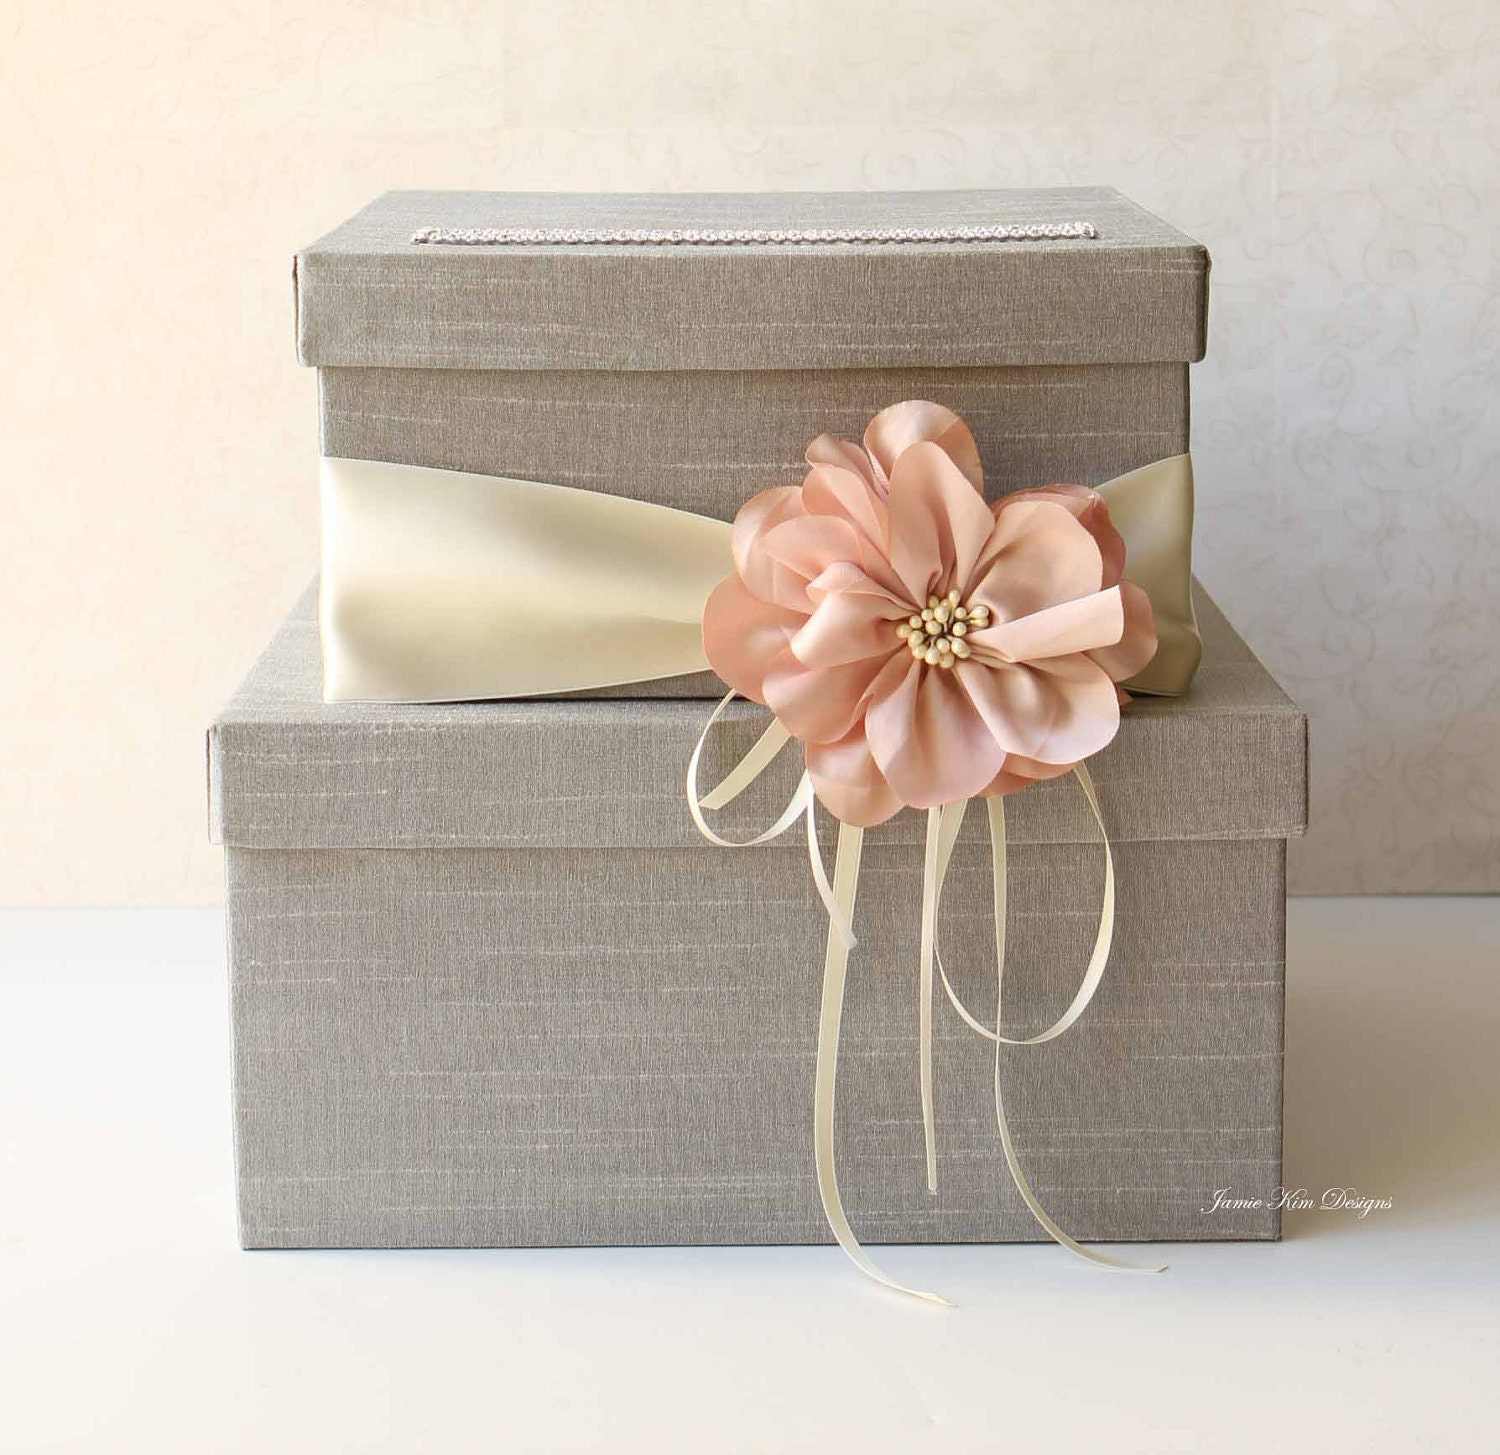 Wedding Gift Box Suggestions : Wedding Card Box Wedding Money Box Gift Card by jamiekimdesigns